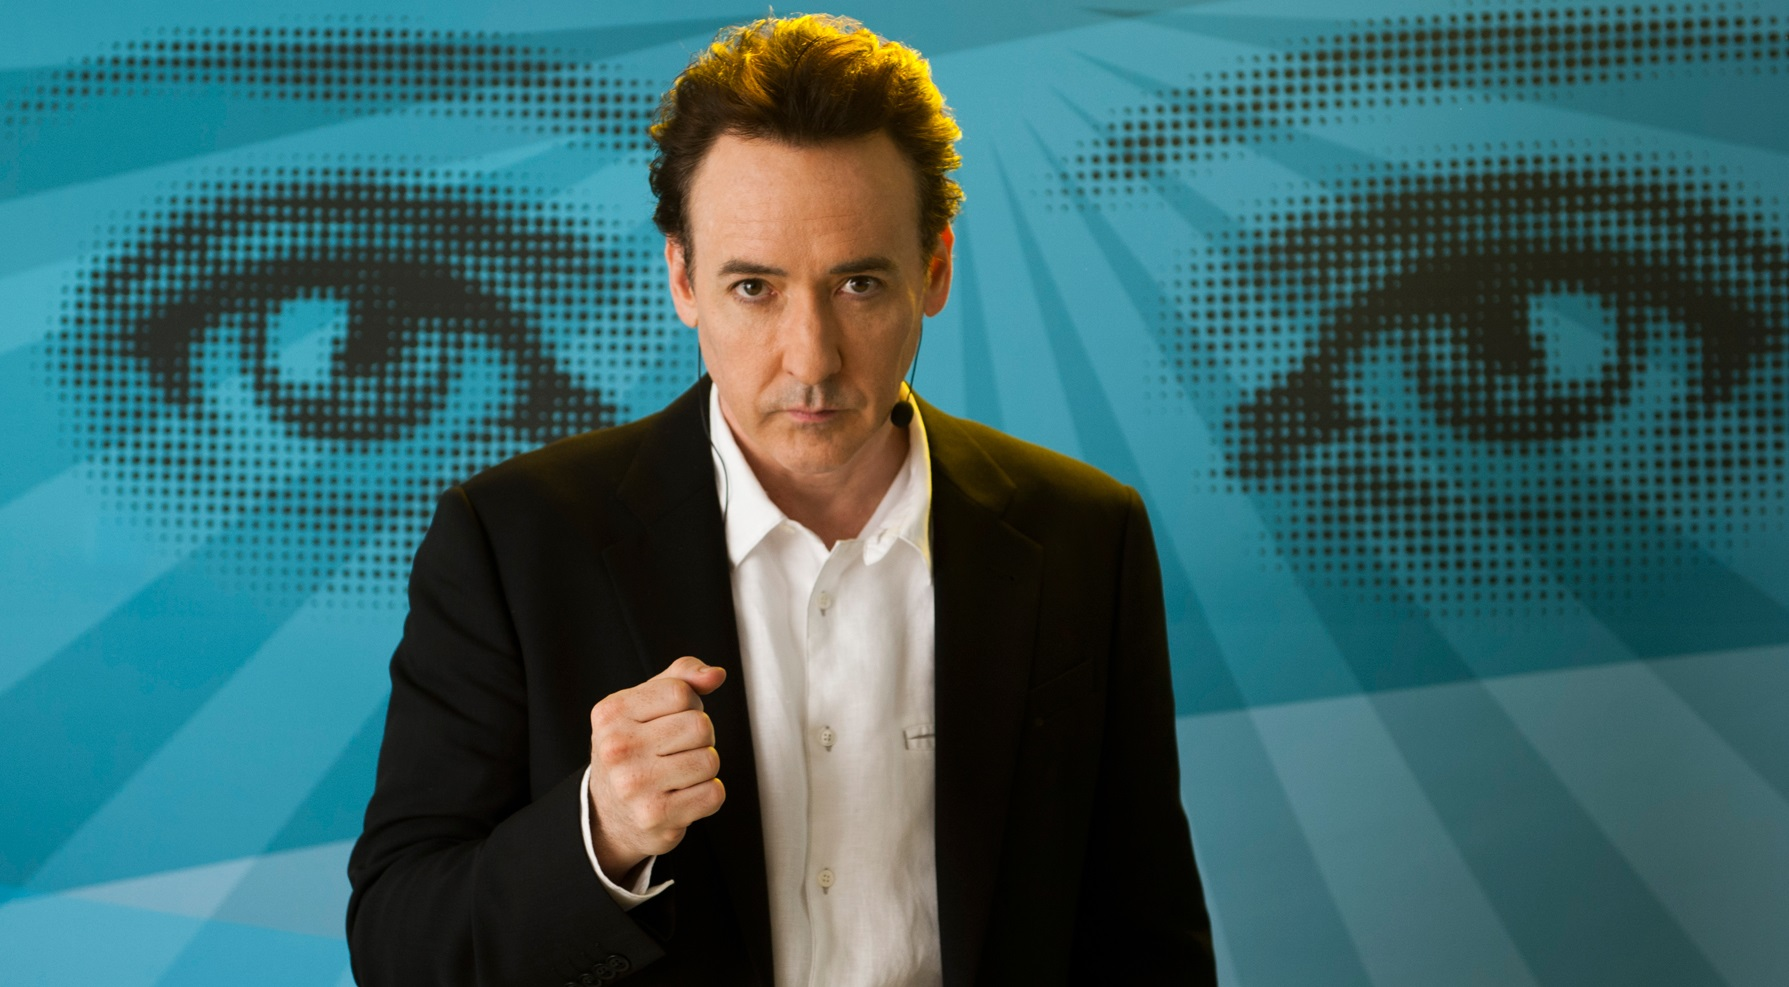 Maps to the Stars John Cusack